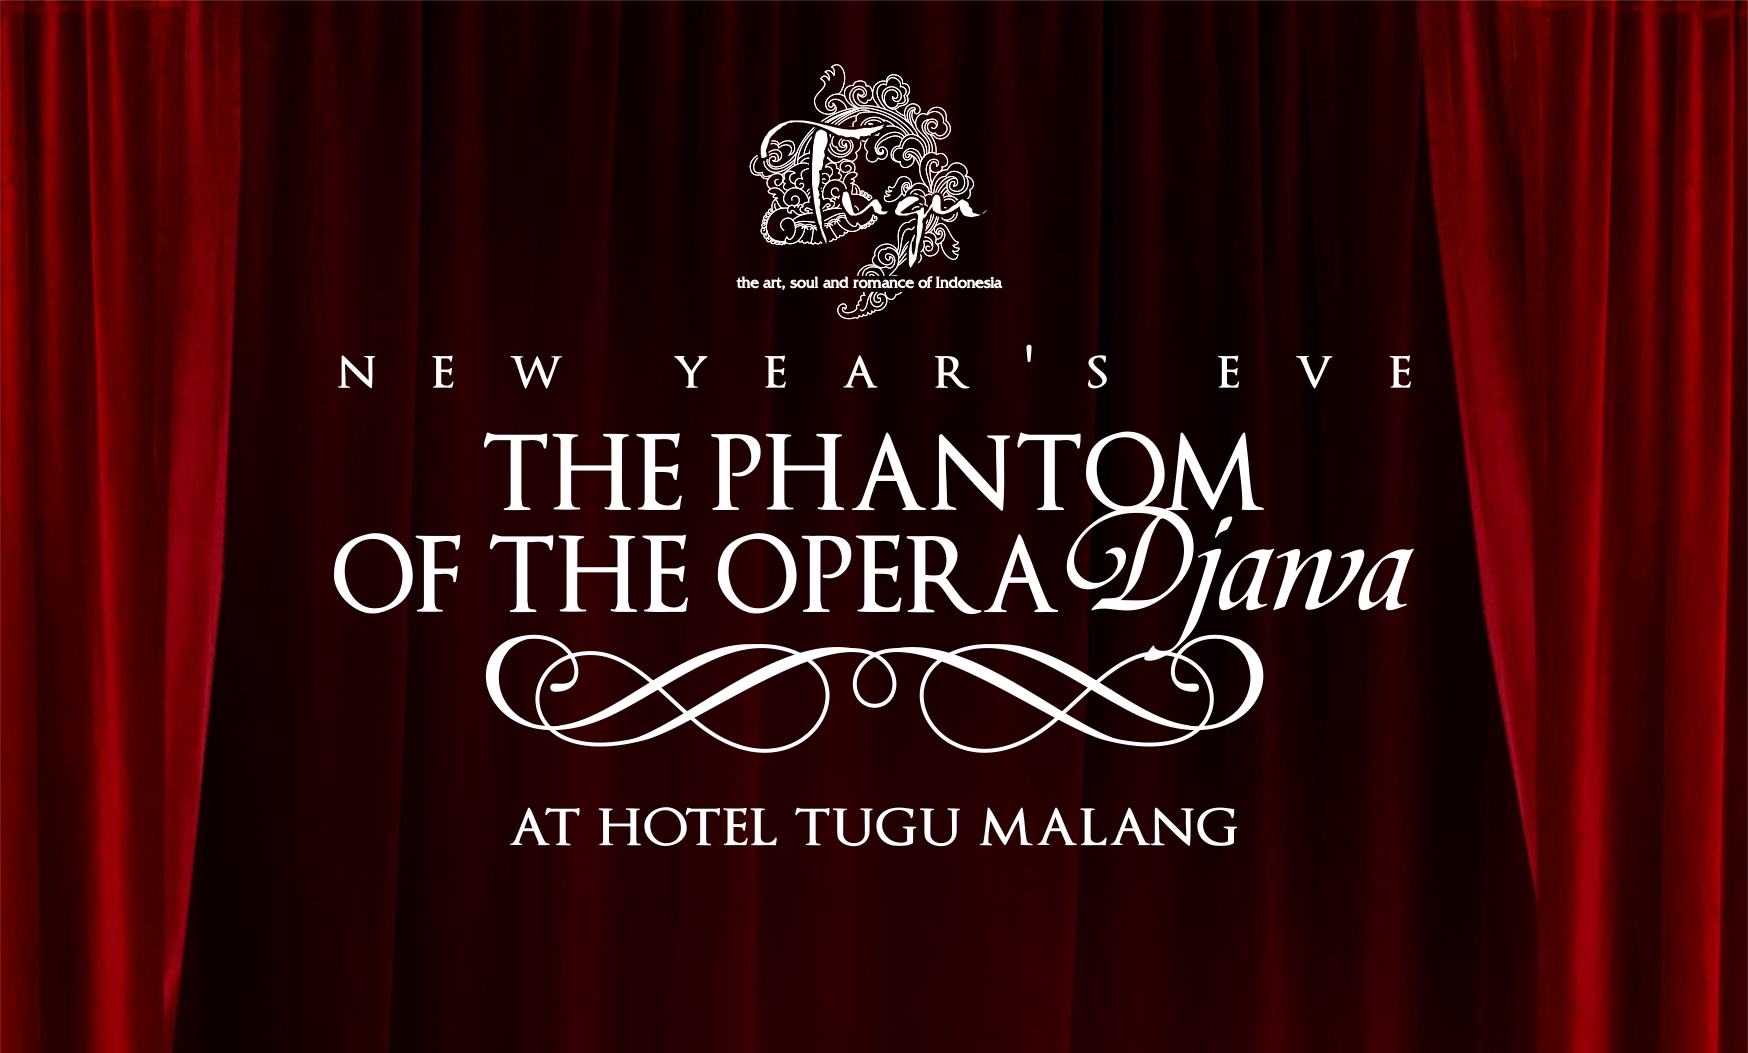 new year's eve - the phantom of the opera djawa at hotel tugu malang